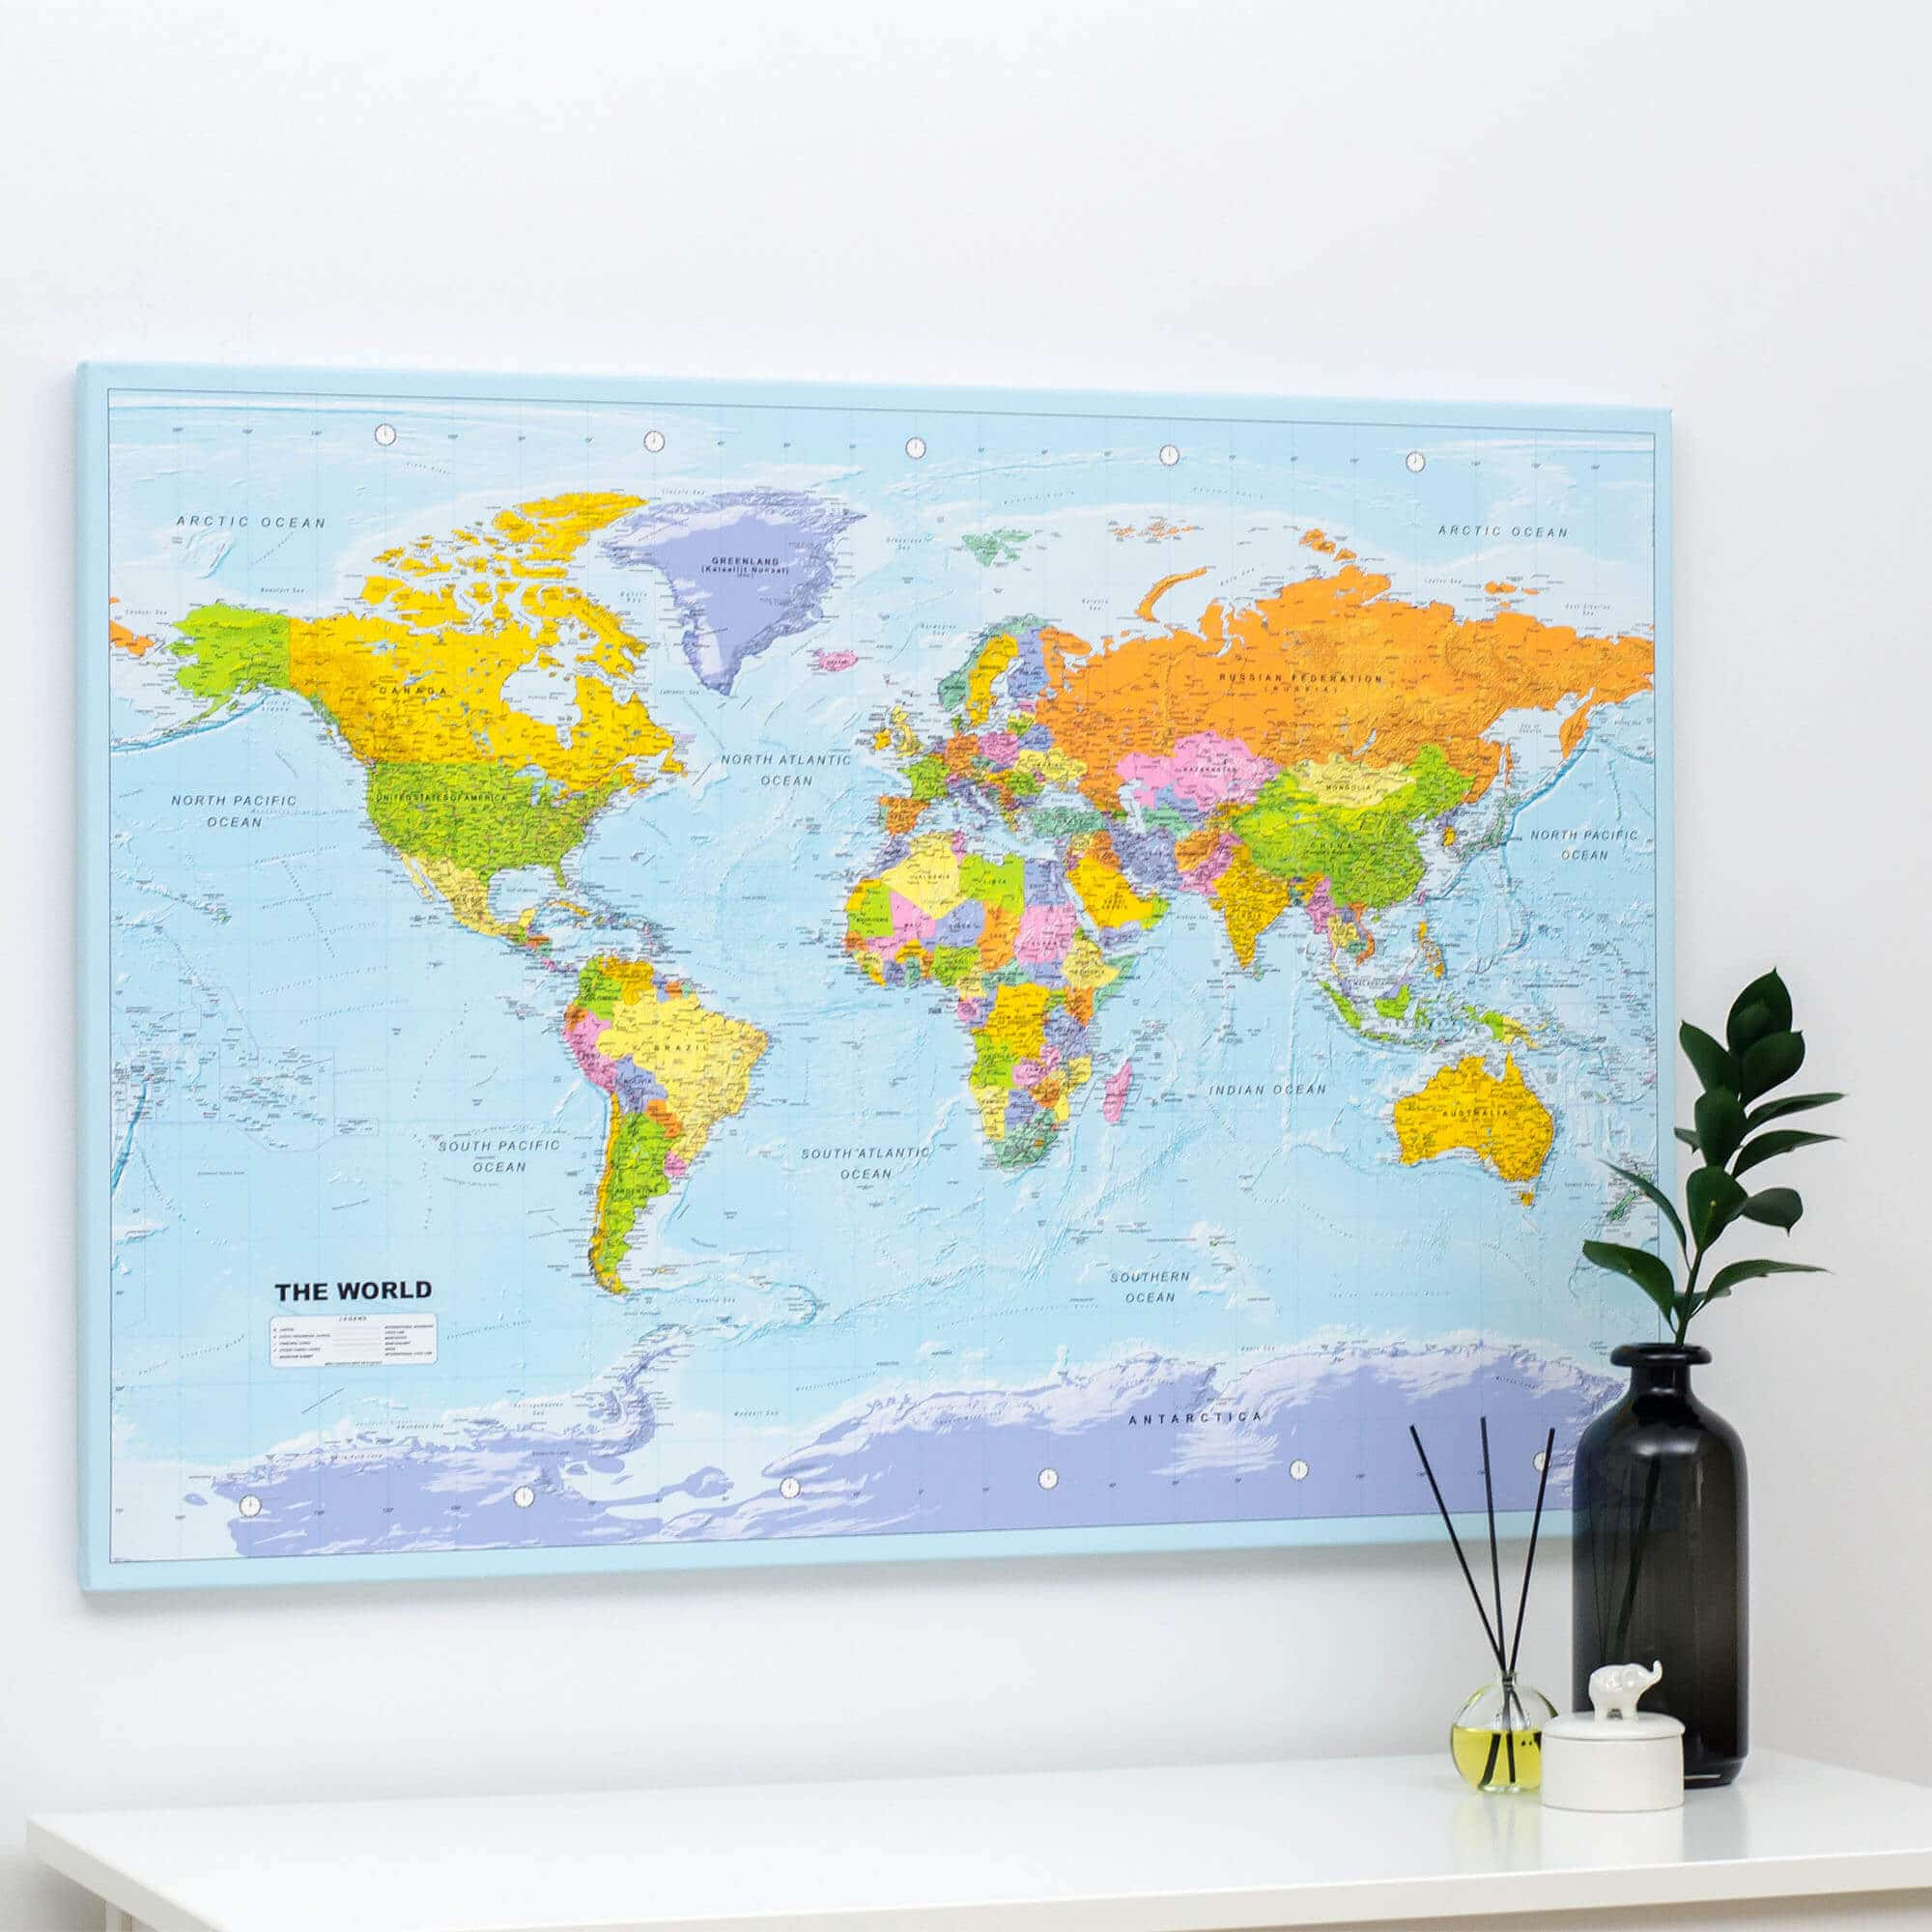 Detailed Map Of The World.World Push Pin Map Political Detailed